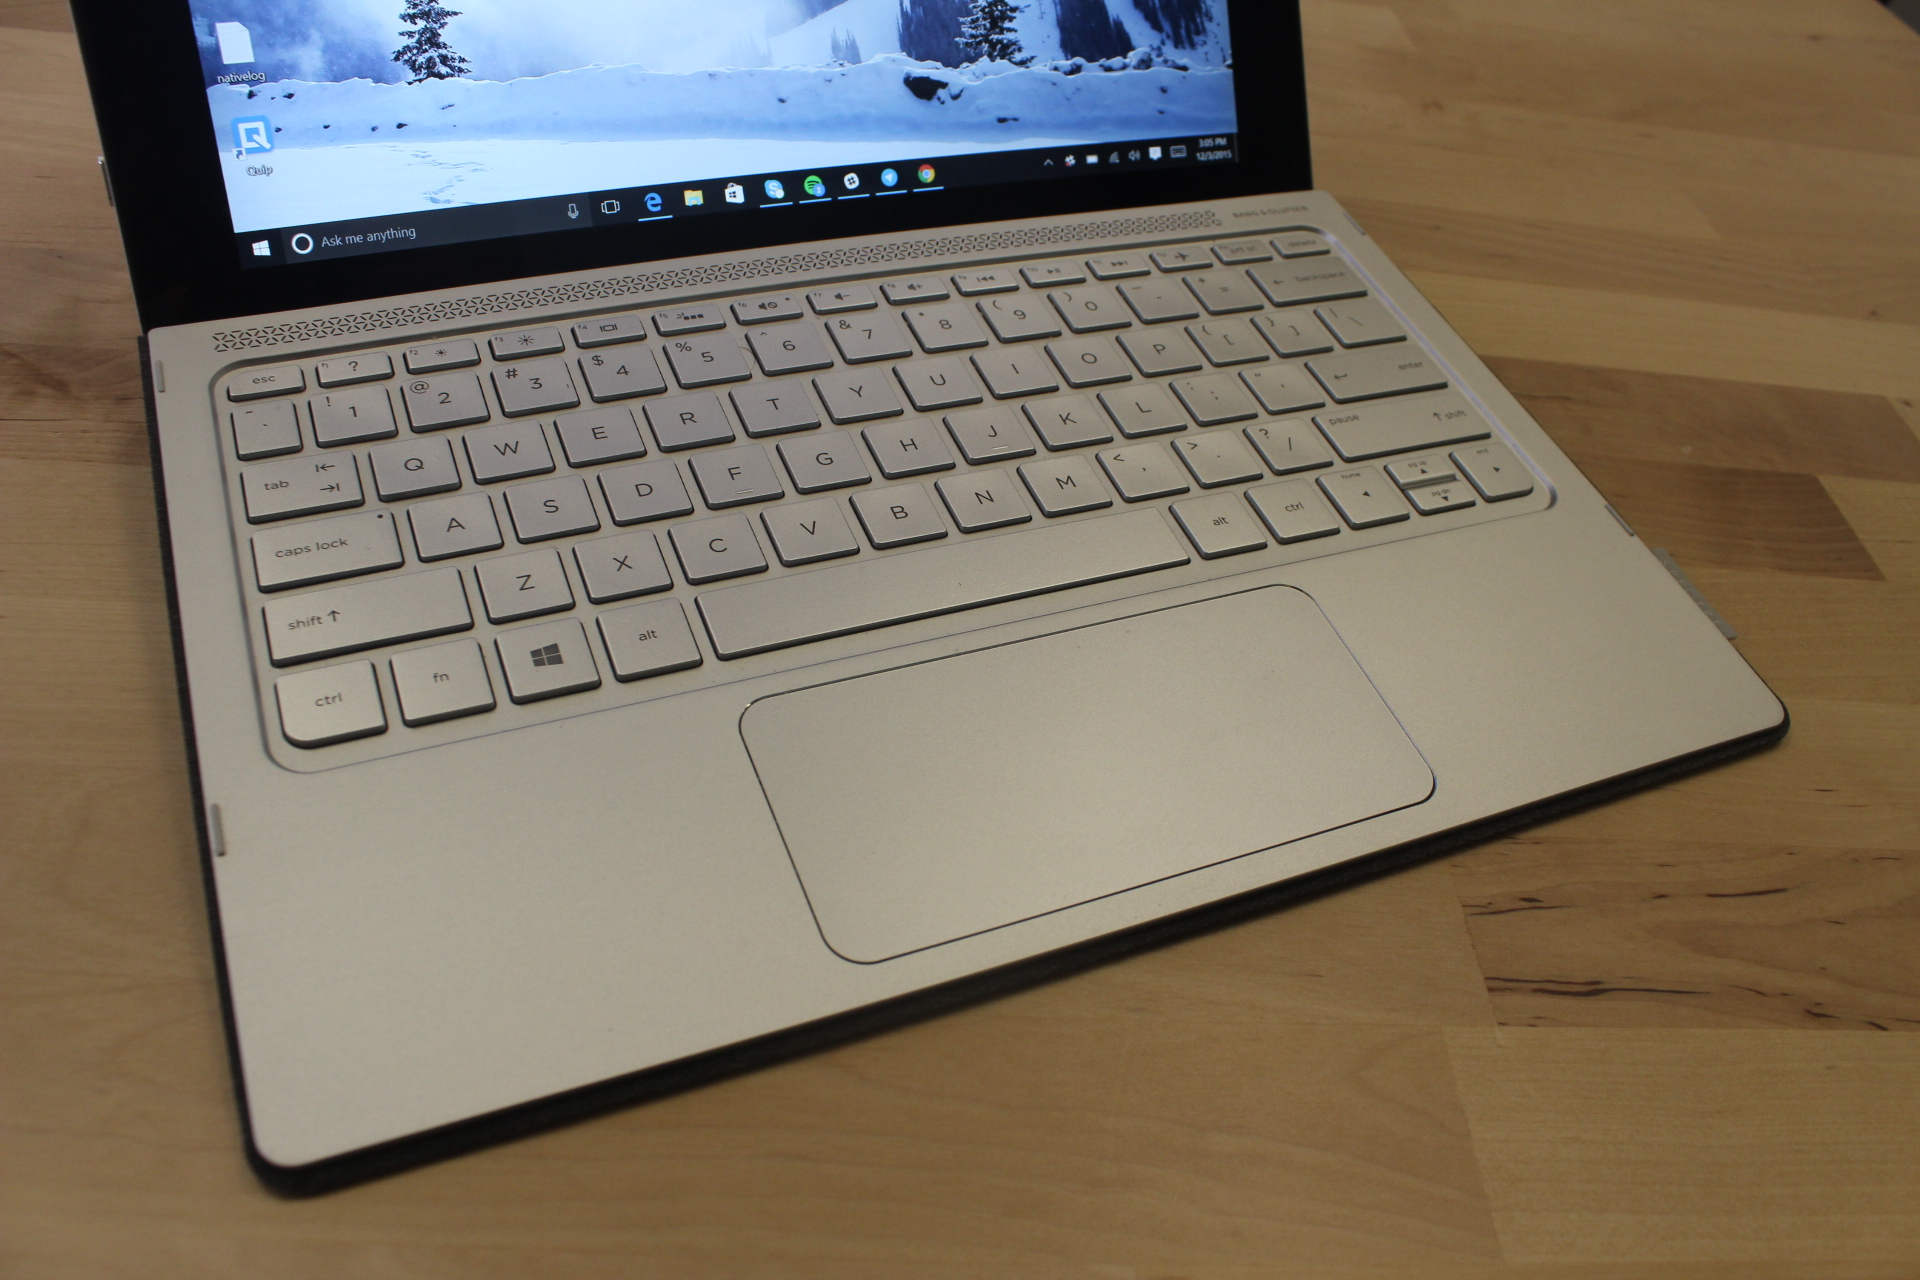 The HP Spectre x2's keyboard.